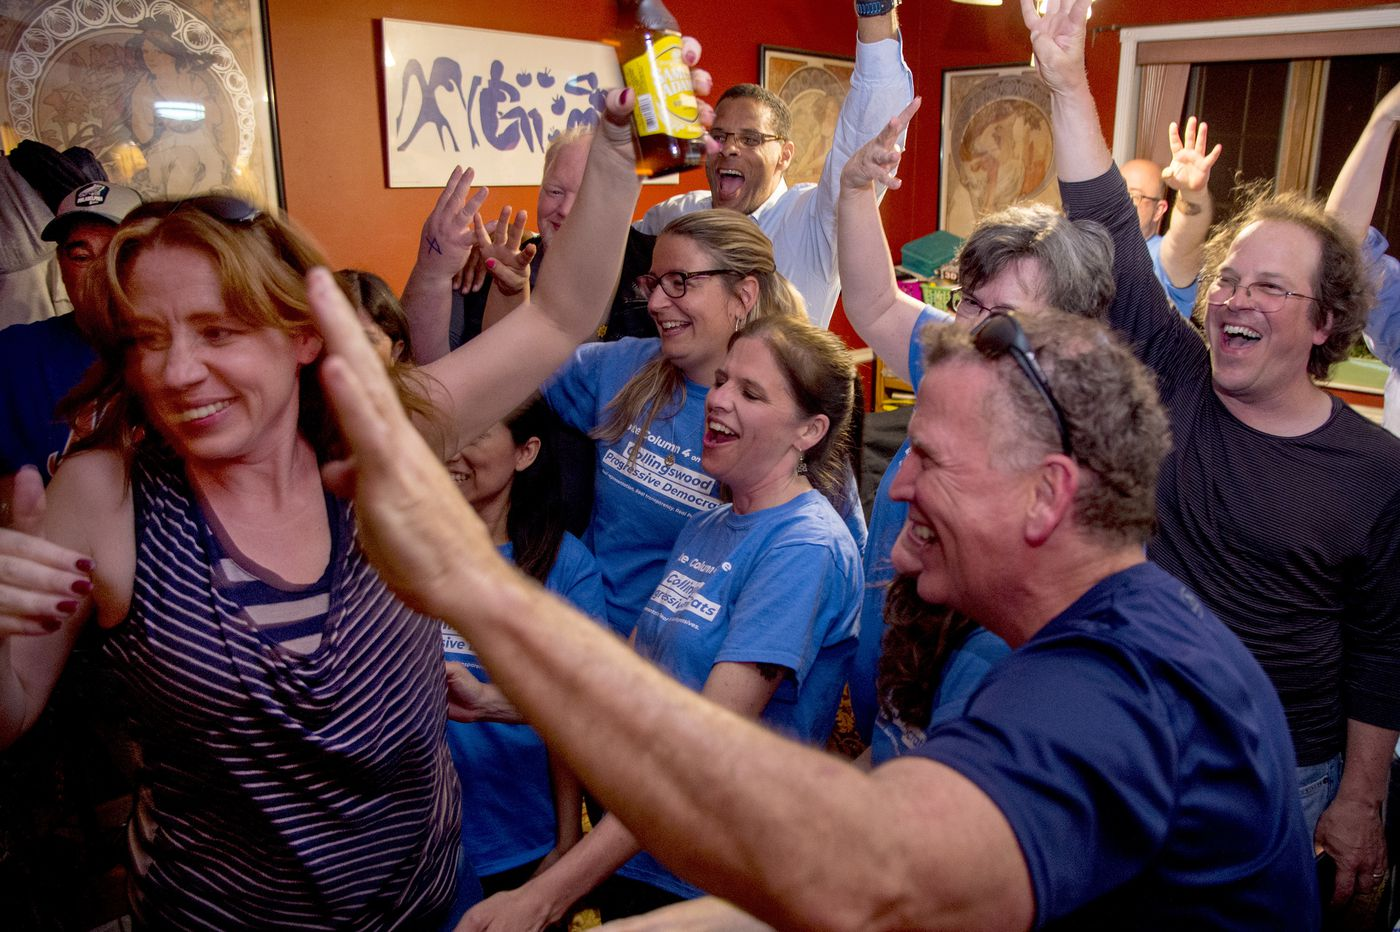 Progressives shake things up a bit inside Norcross-led Democratic party in South Jersey